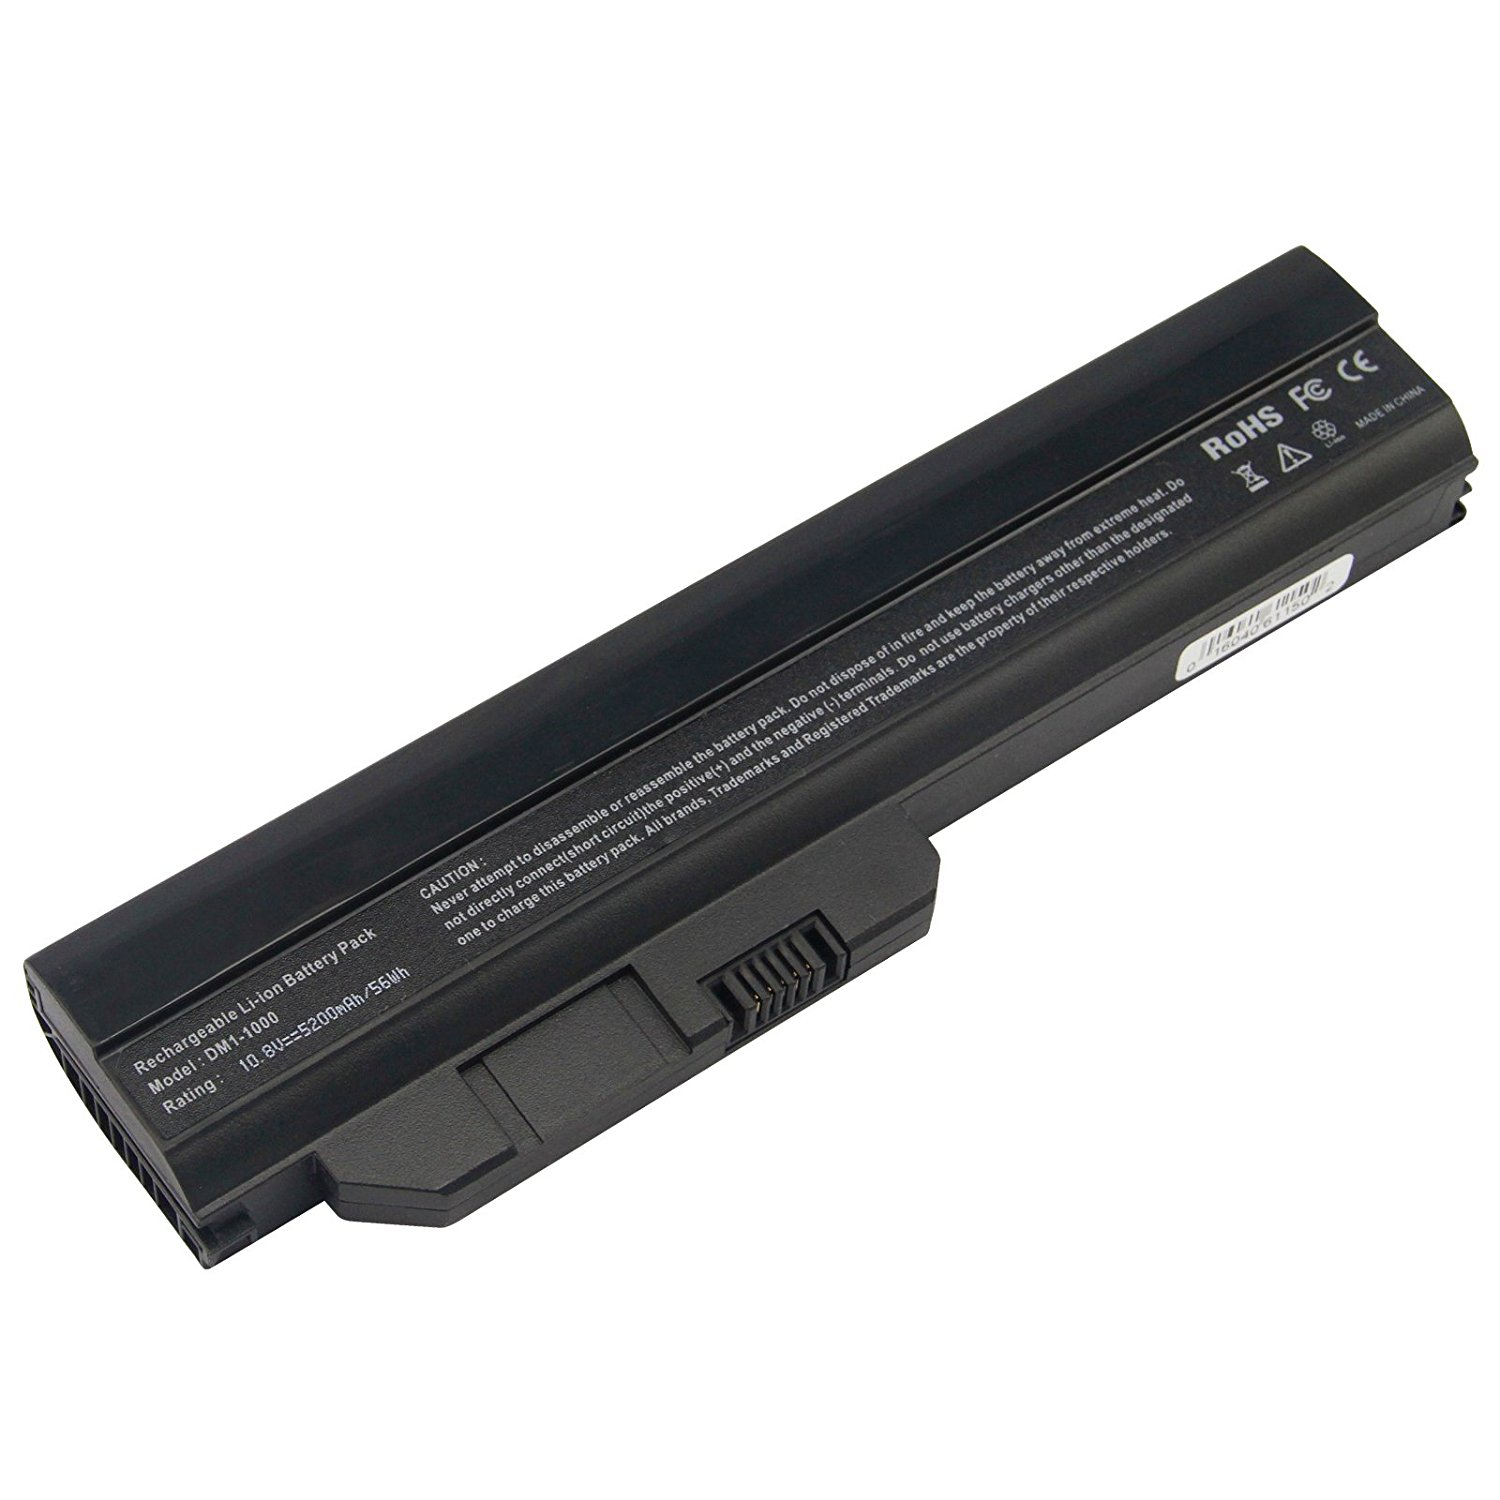 Fancy Buying Replacement Notebook Laptop Battery for HP Mini 311-1037NR 6-cell Li-ion Battery